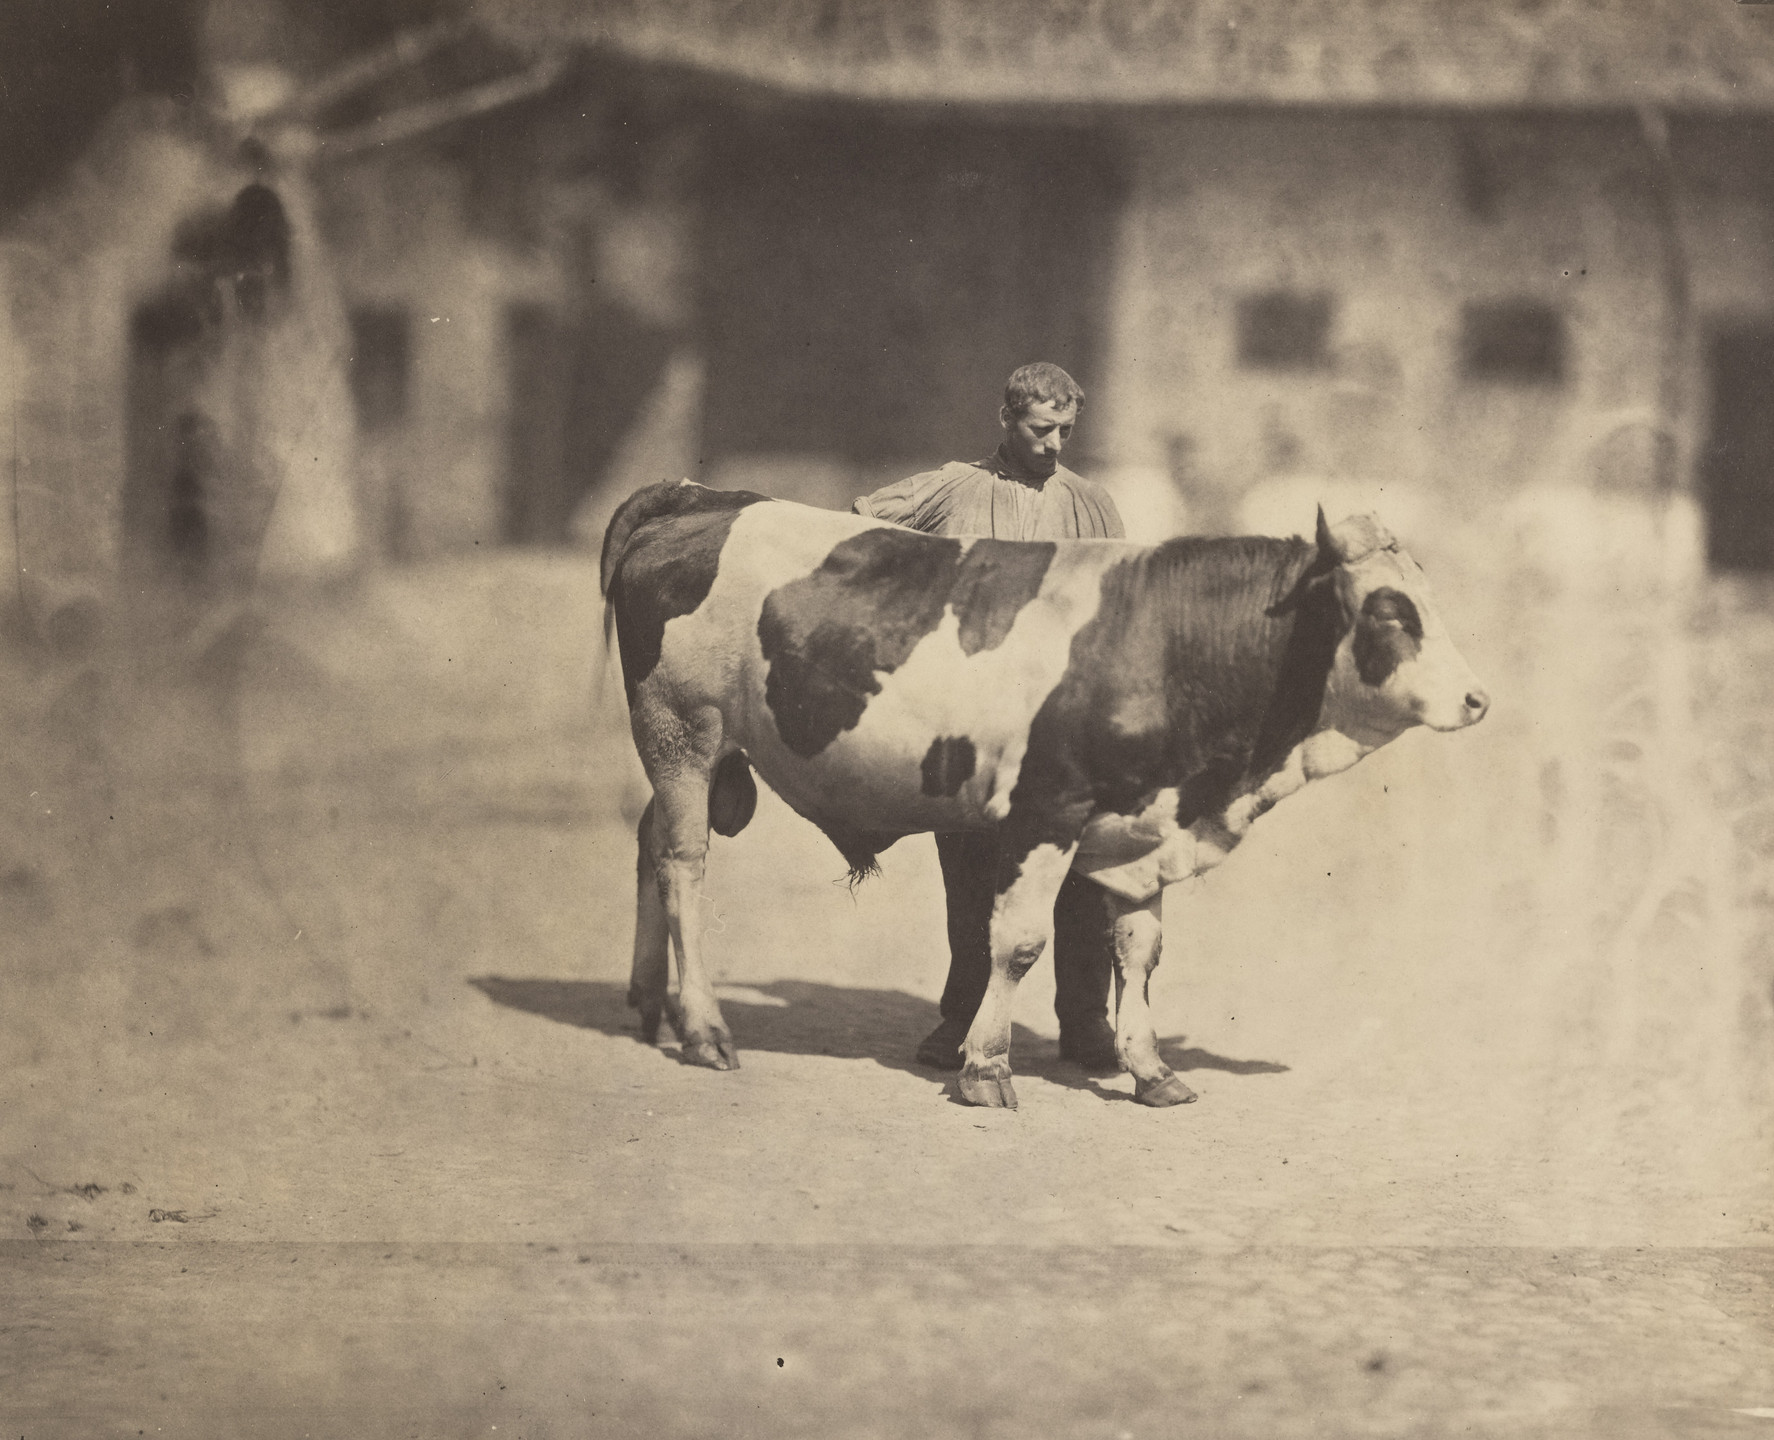 Adolphe Braun. Study of a Bull with Handler. 1850s